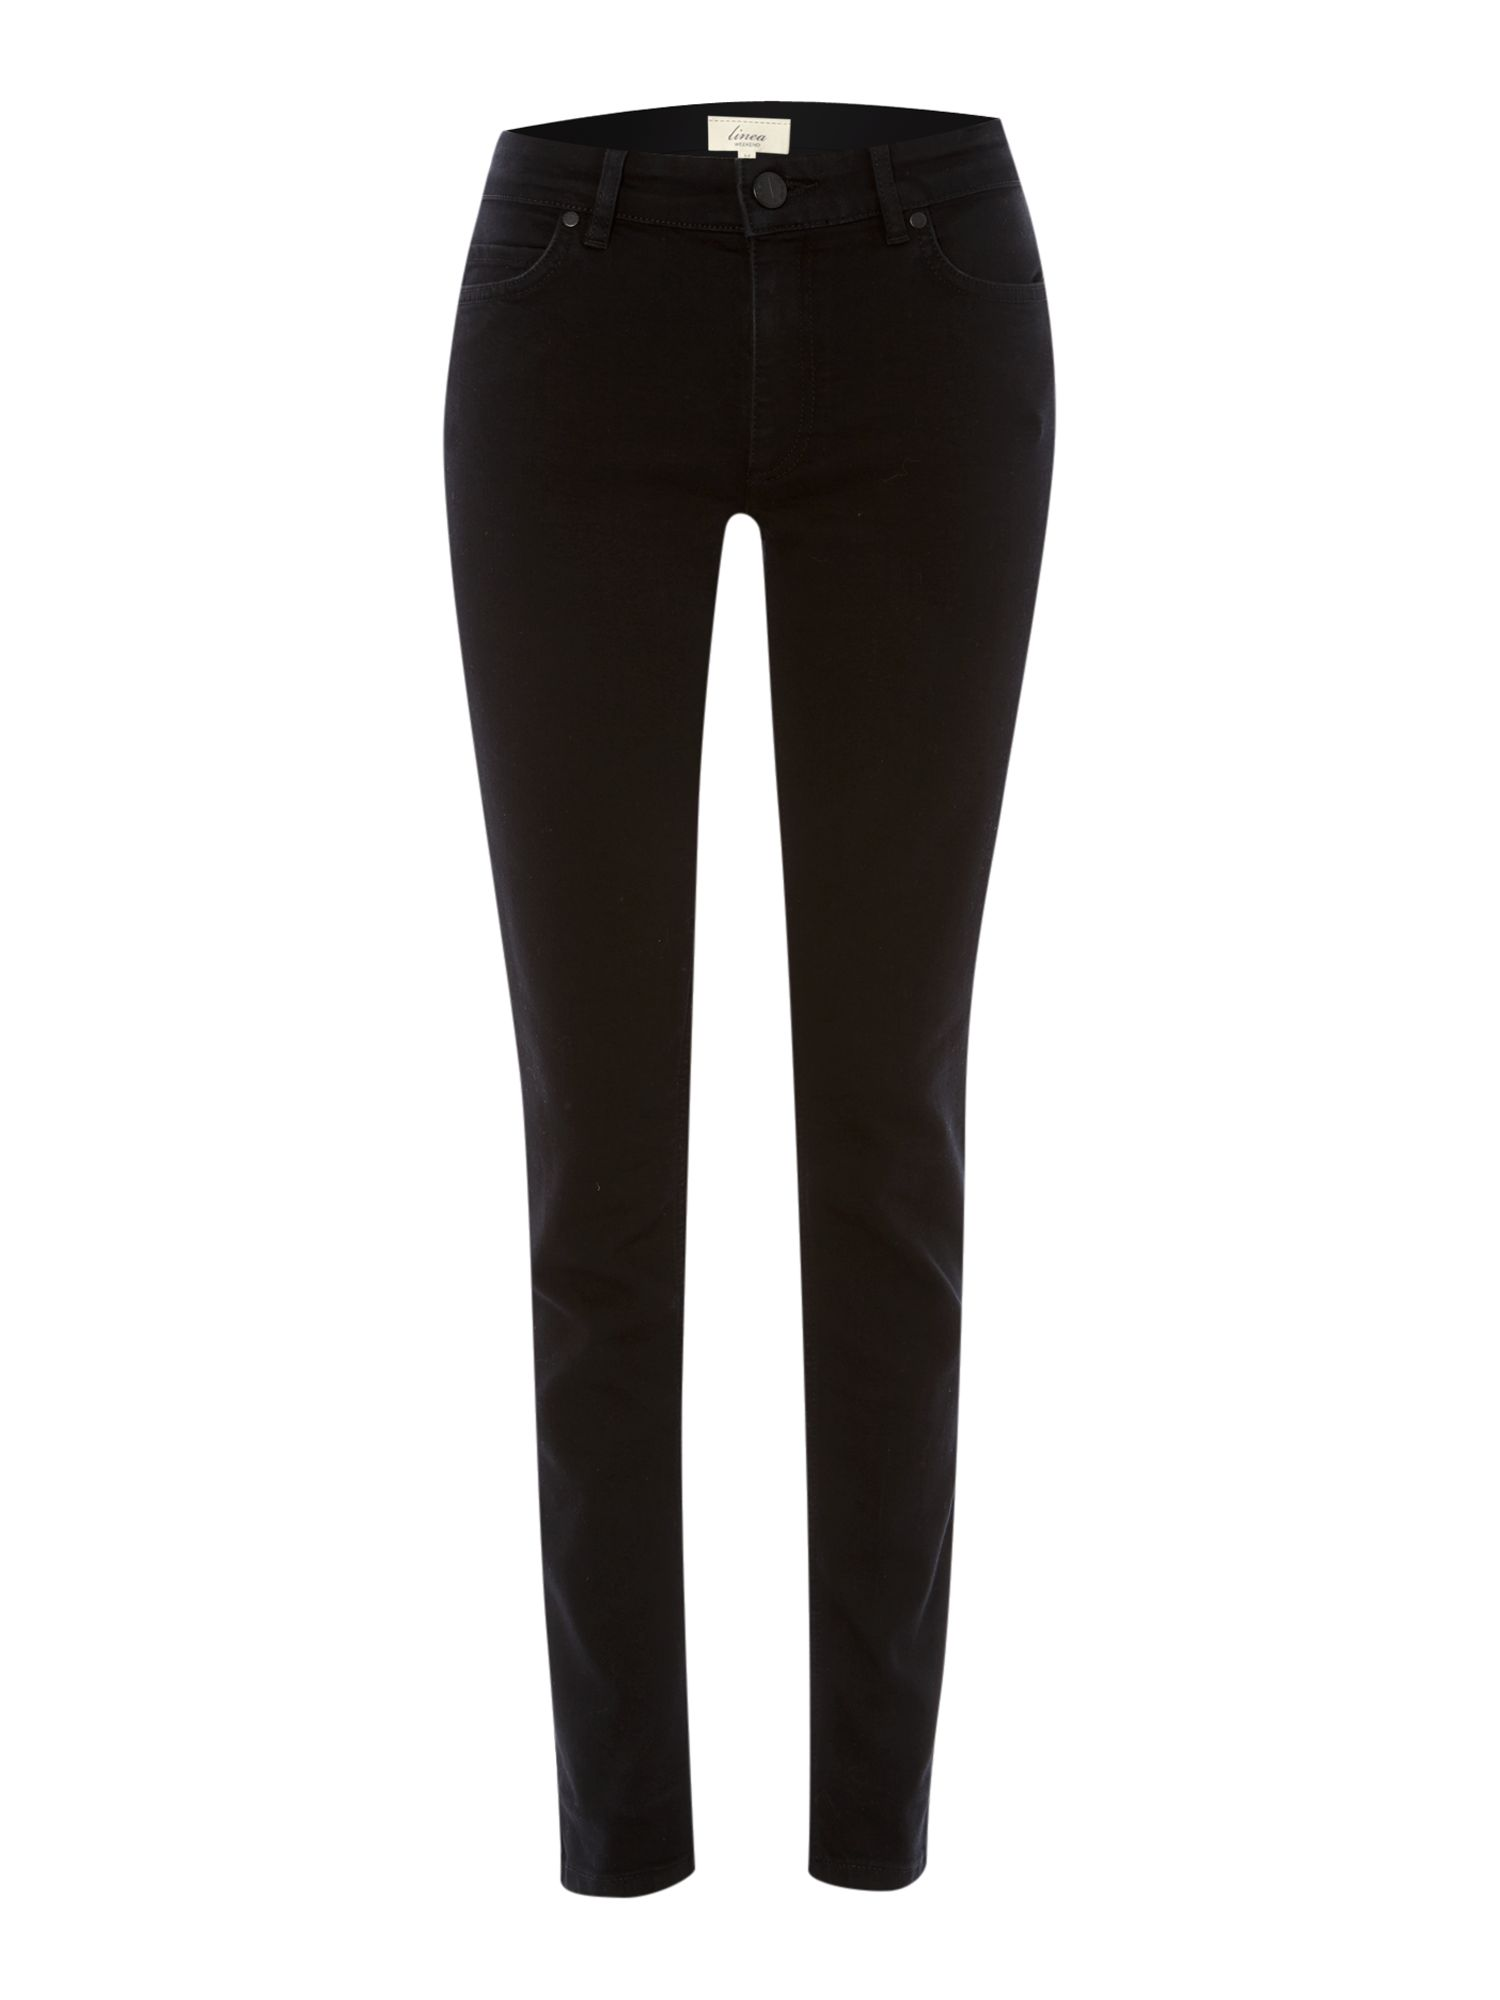 Ladies black slim leg jeans